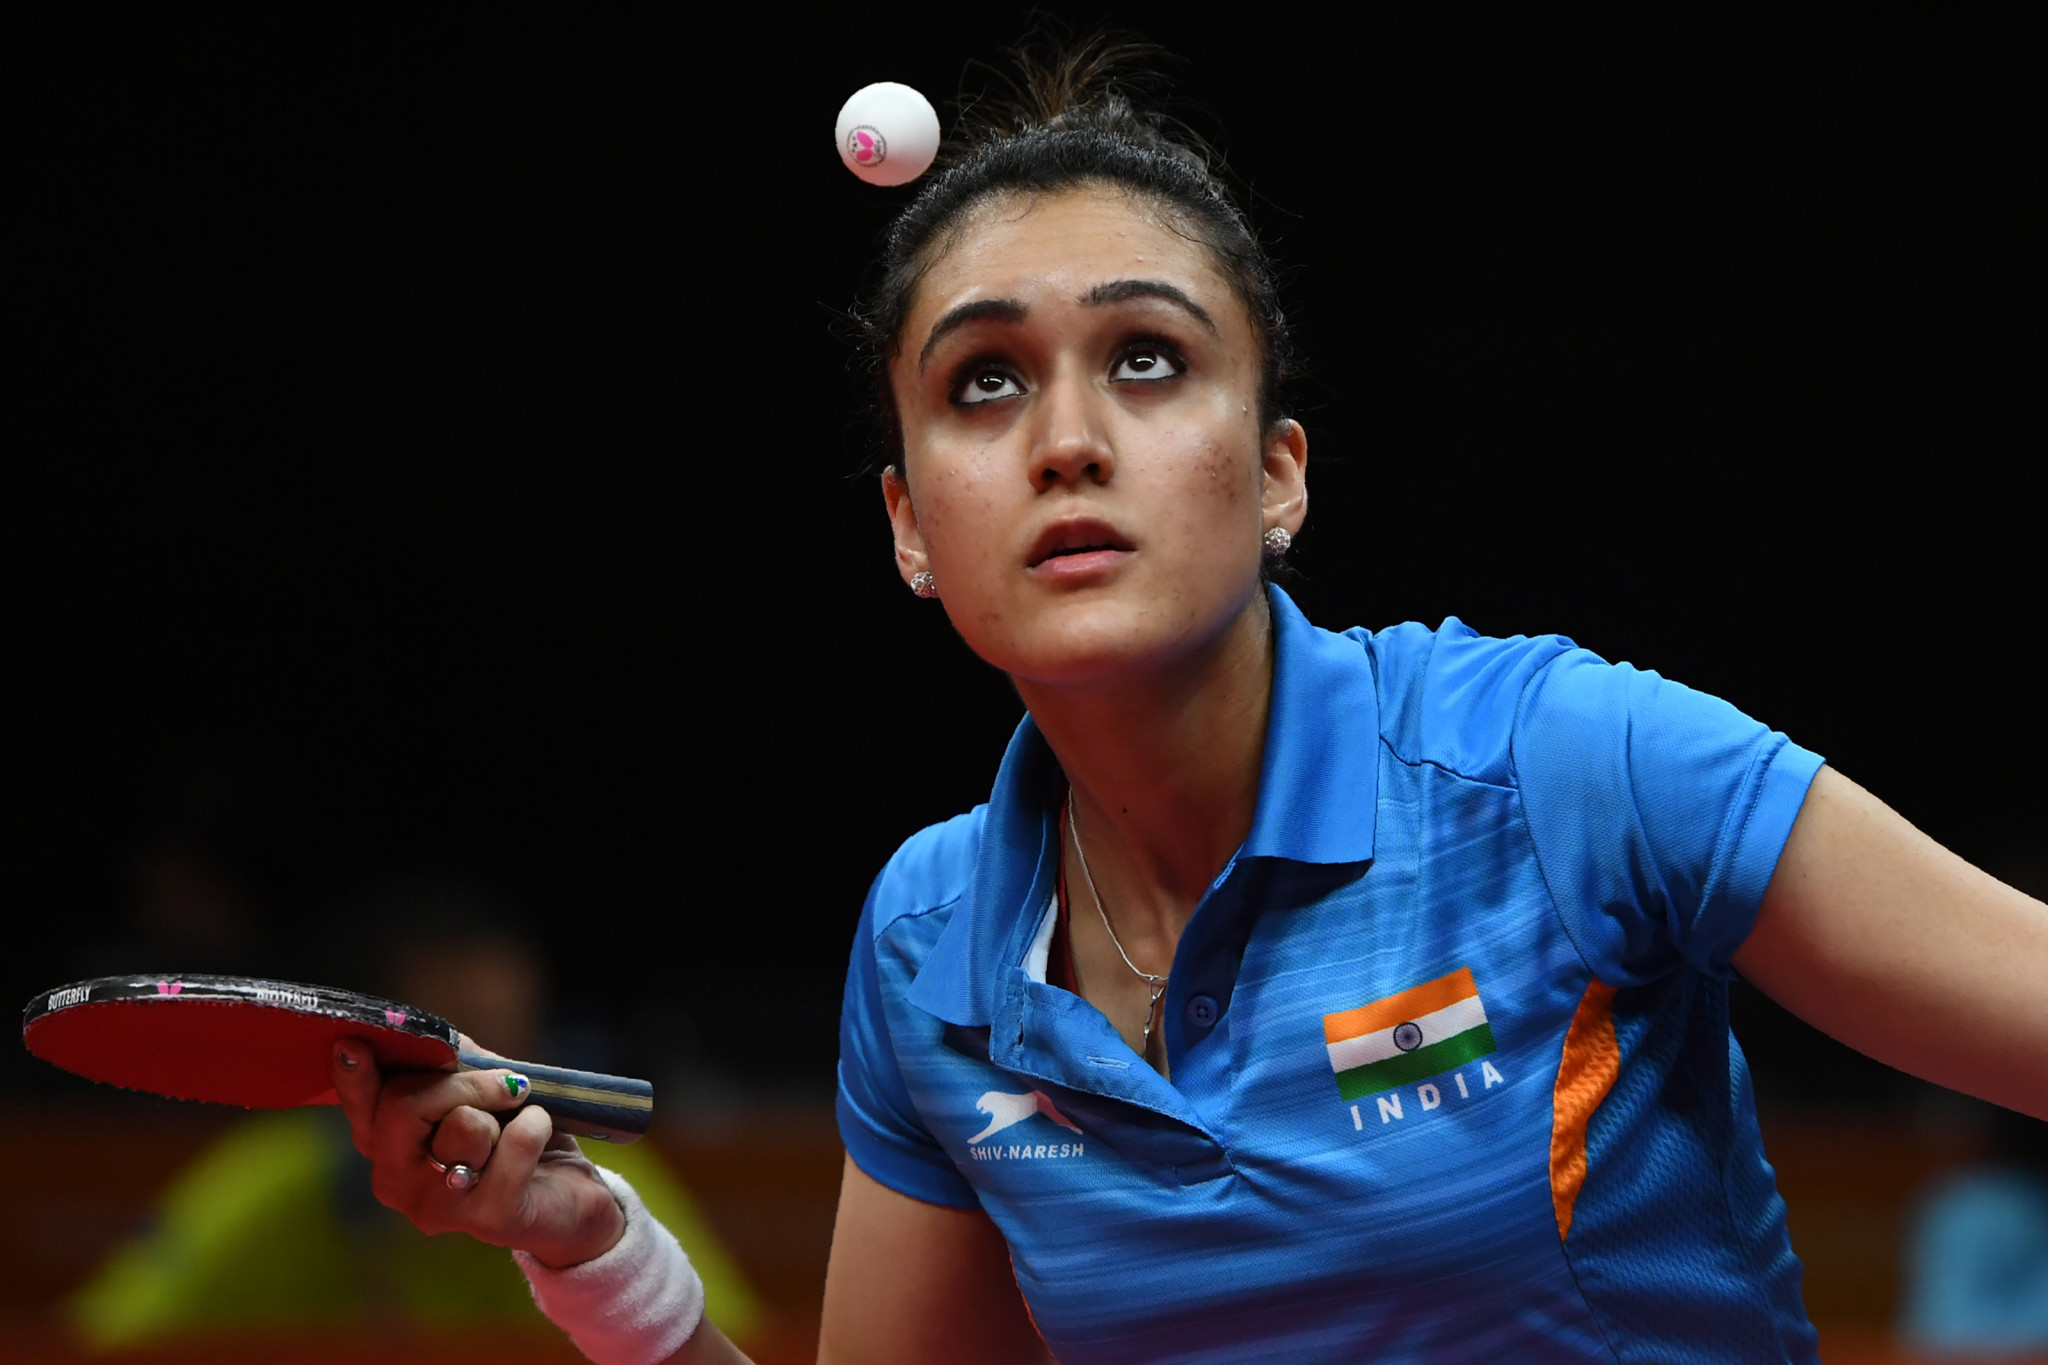 Commonwealth Games table tennis gold medallist Manika Batra was among the female athletes specially picked out for praise by Indian Prime Minister Narendra Modi ©Getty Images